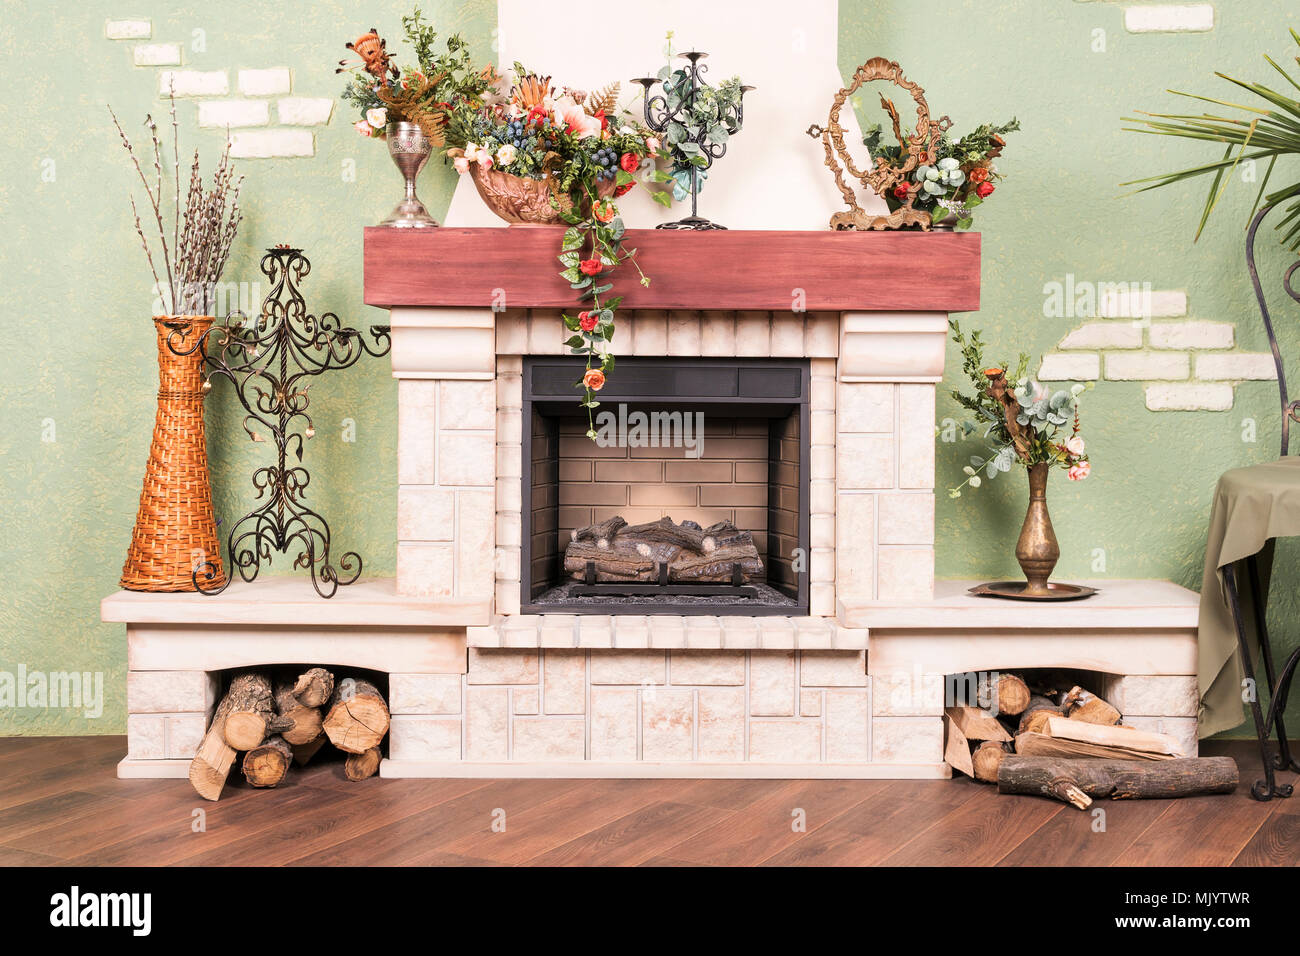 Decorative Beautiful Fireplace Without Fire With Flowers And